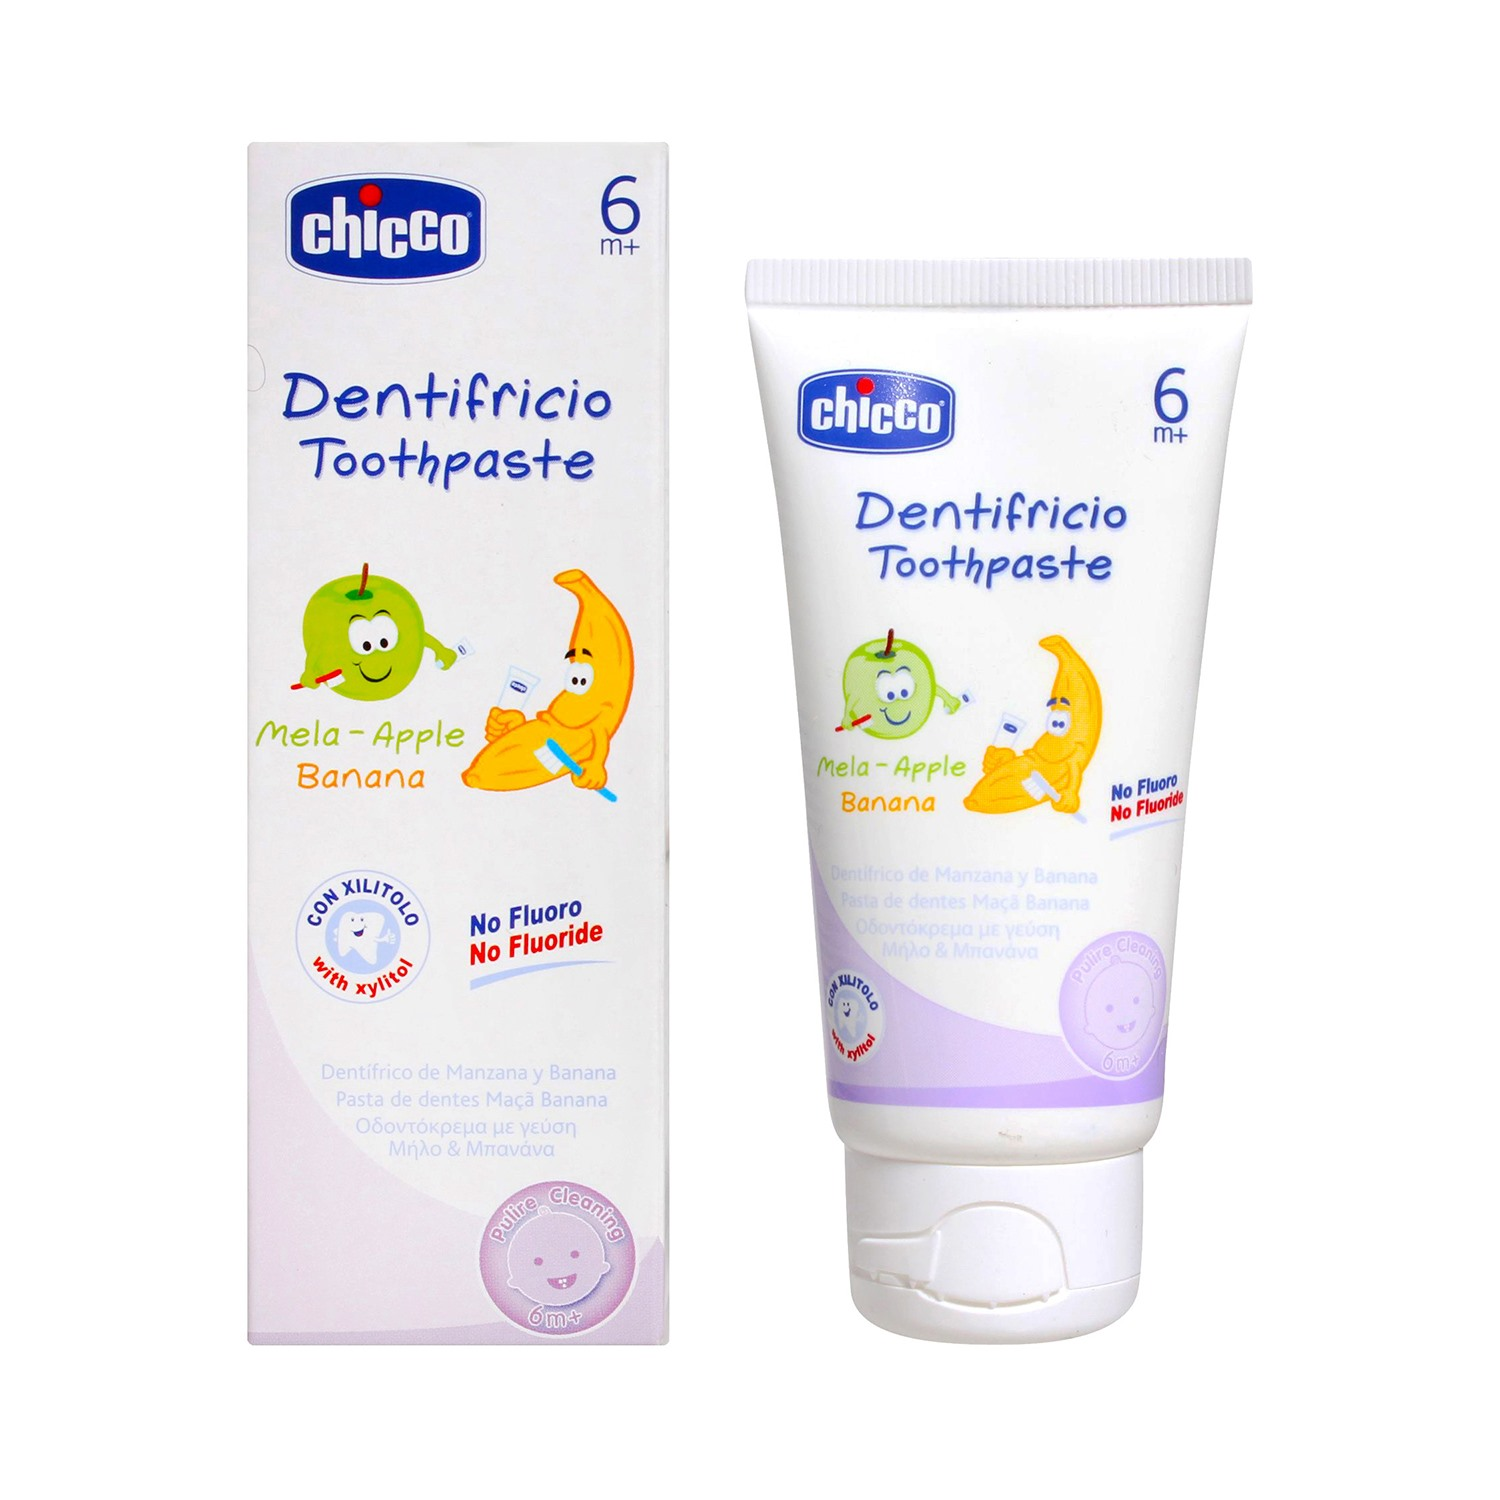 Chicco 4967 Dentifricio Toothpaste 6 Months+ - 50 ml